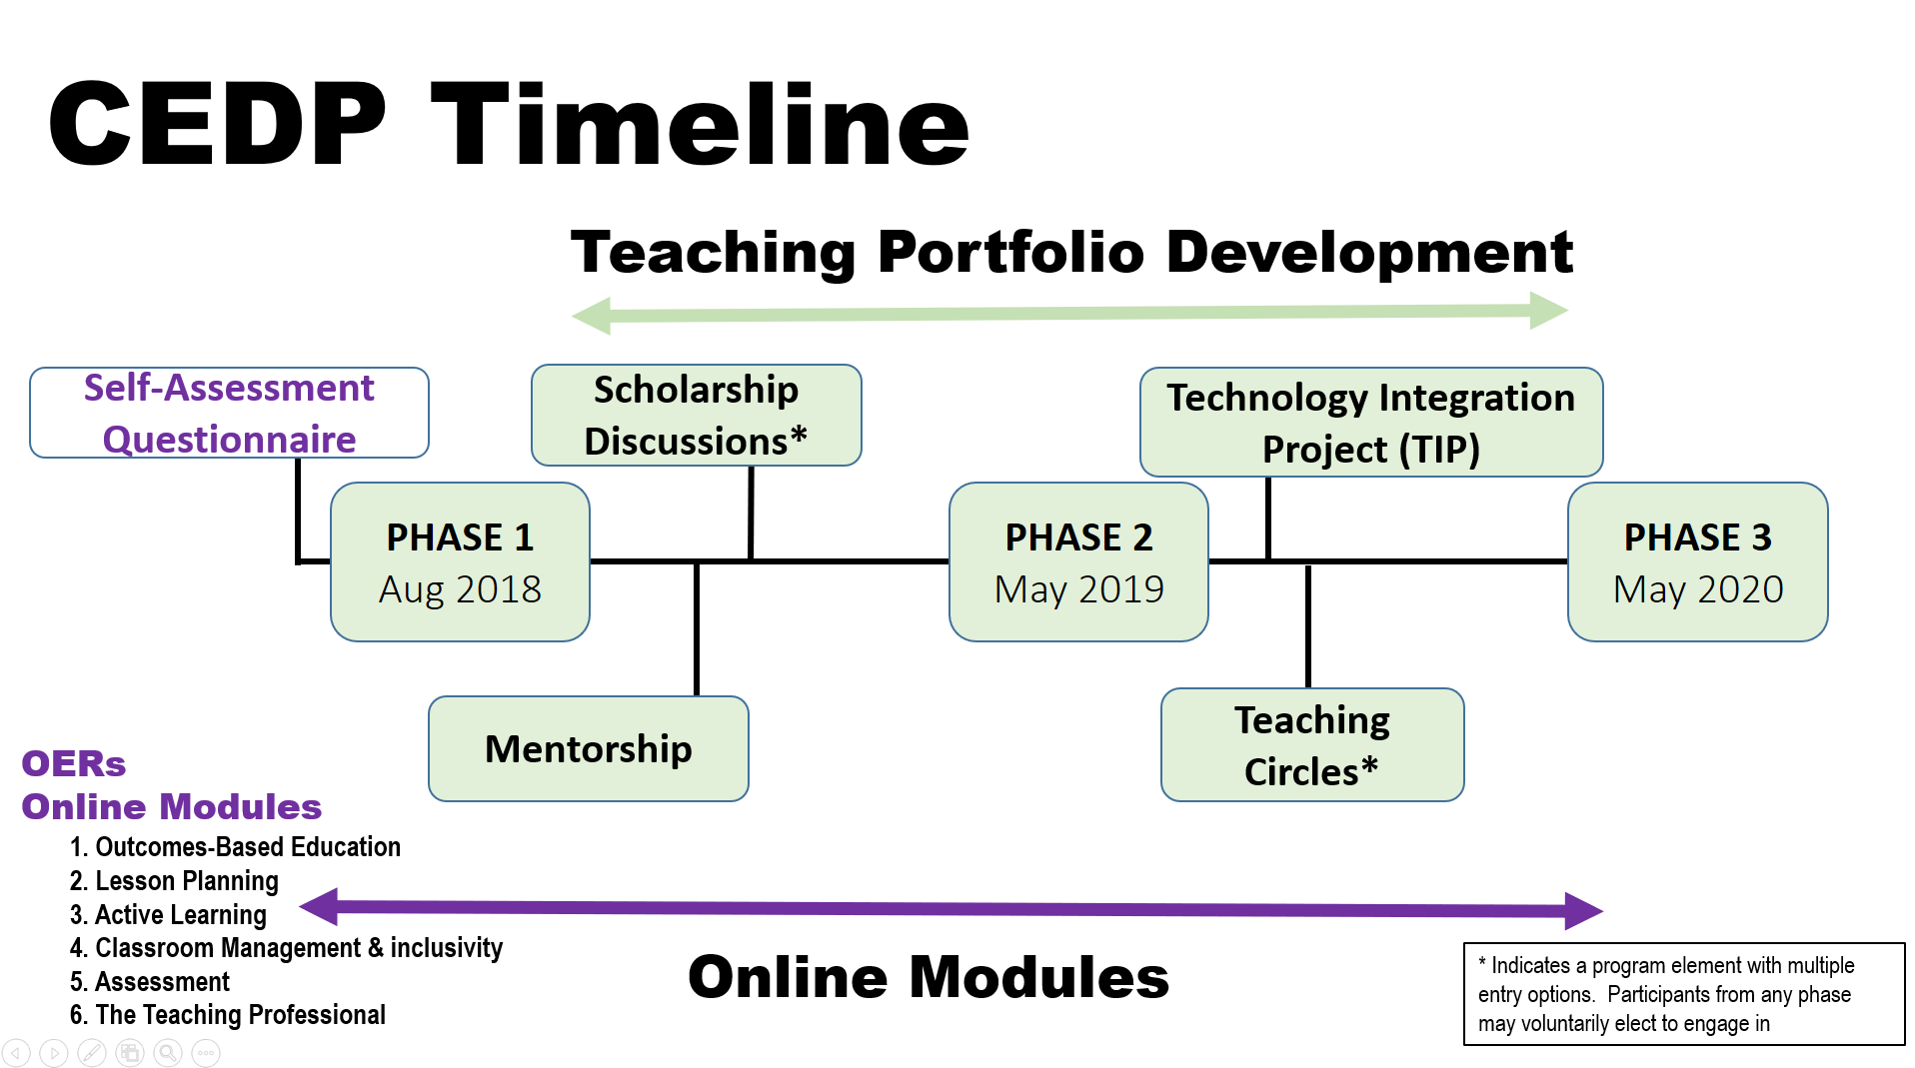 CEDP 2 year visual timeline for participants starting August 2018